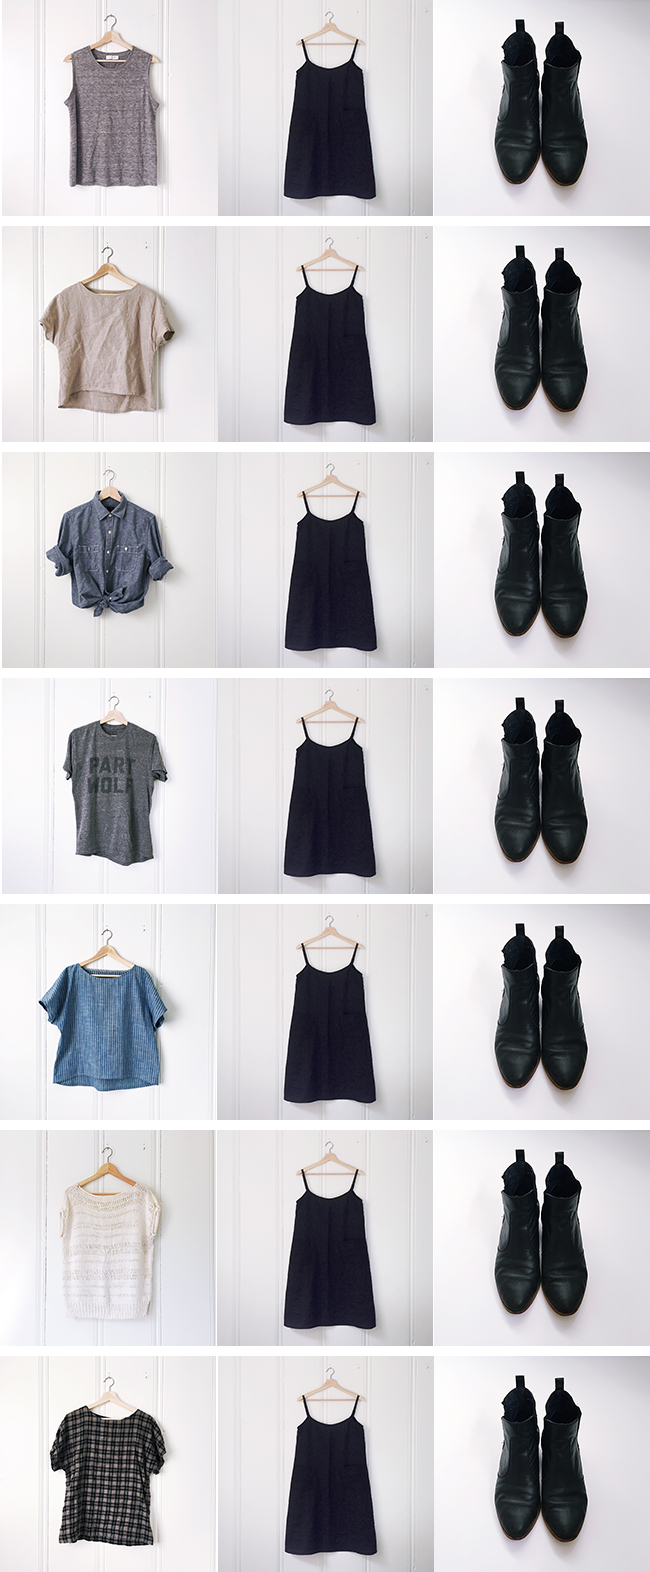 2017 Remake-1 : Black linen slip dress + more camo mending